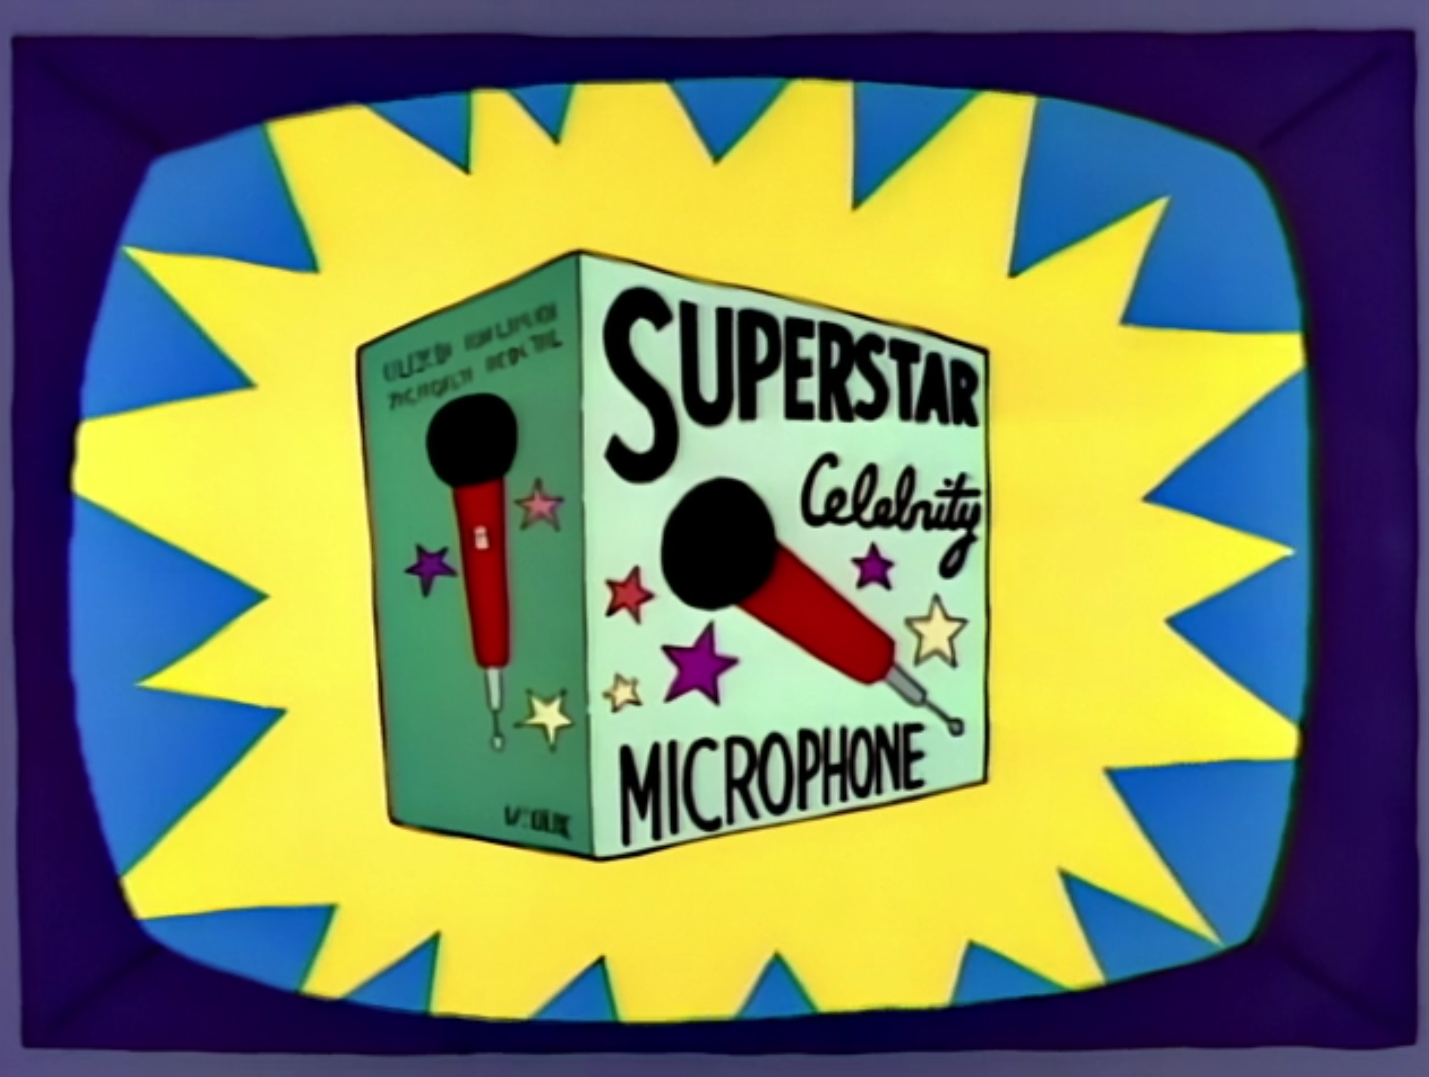 Superstar Celebrity Microphone.png